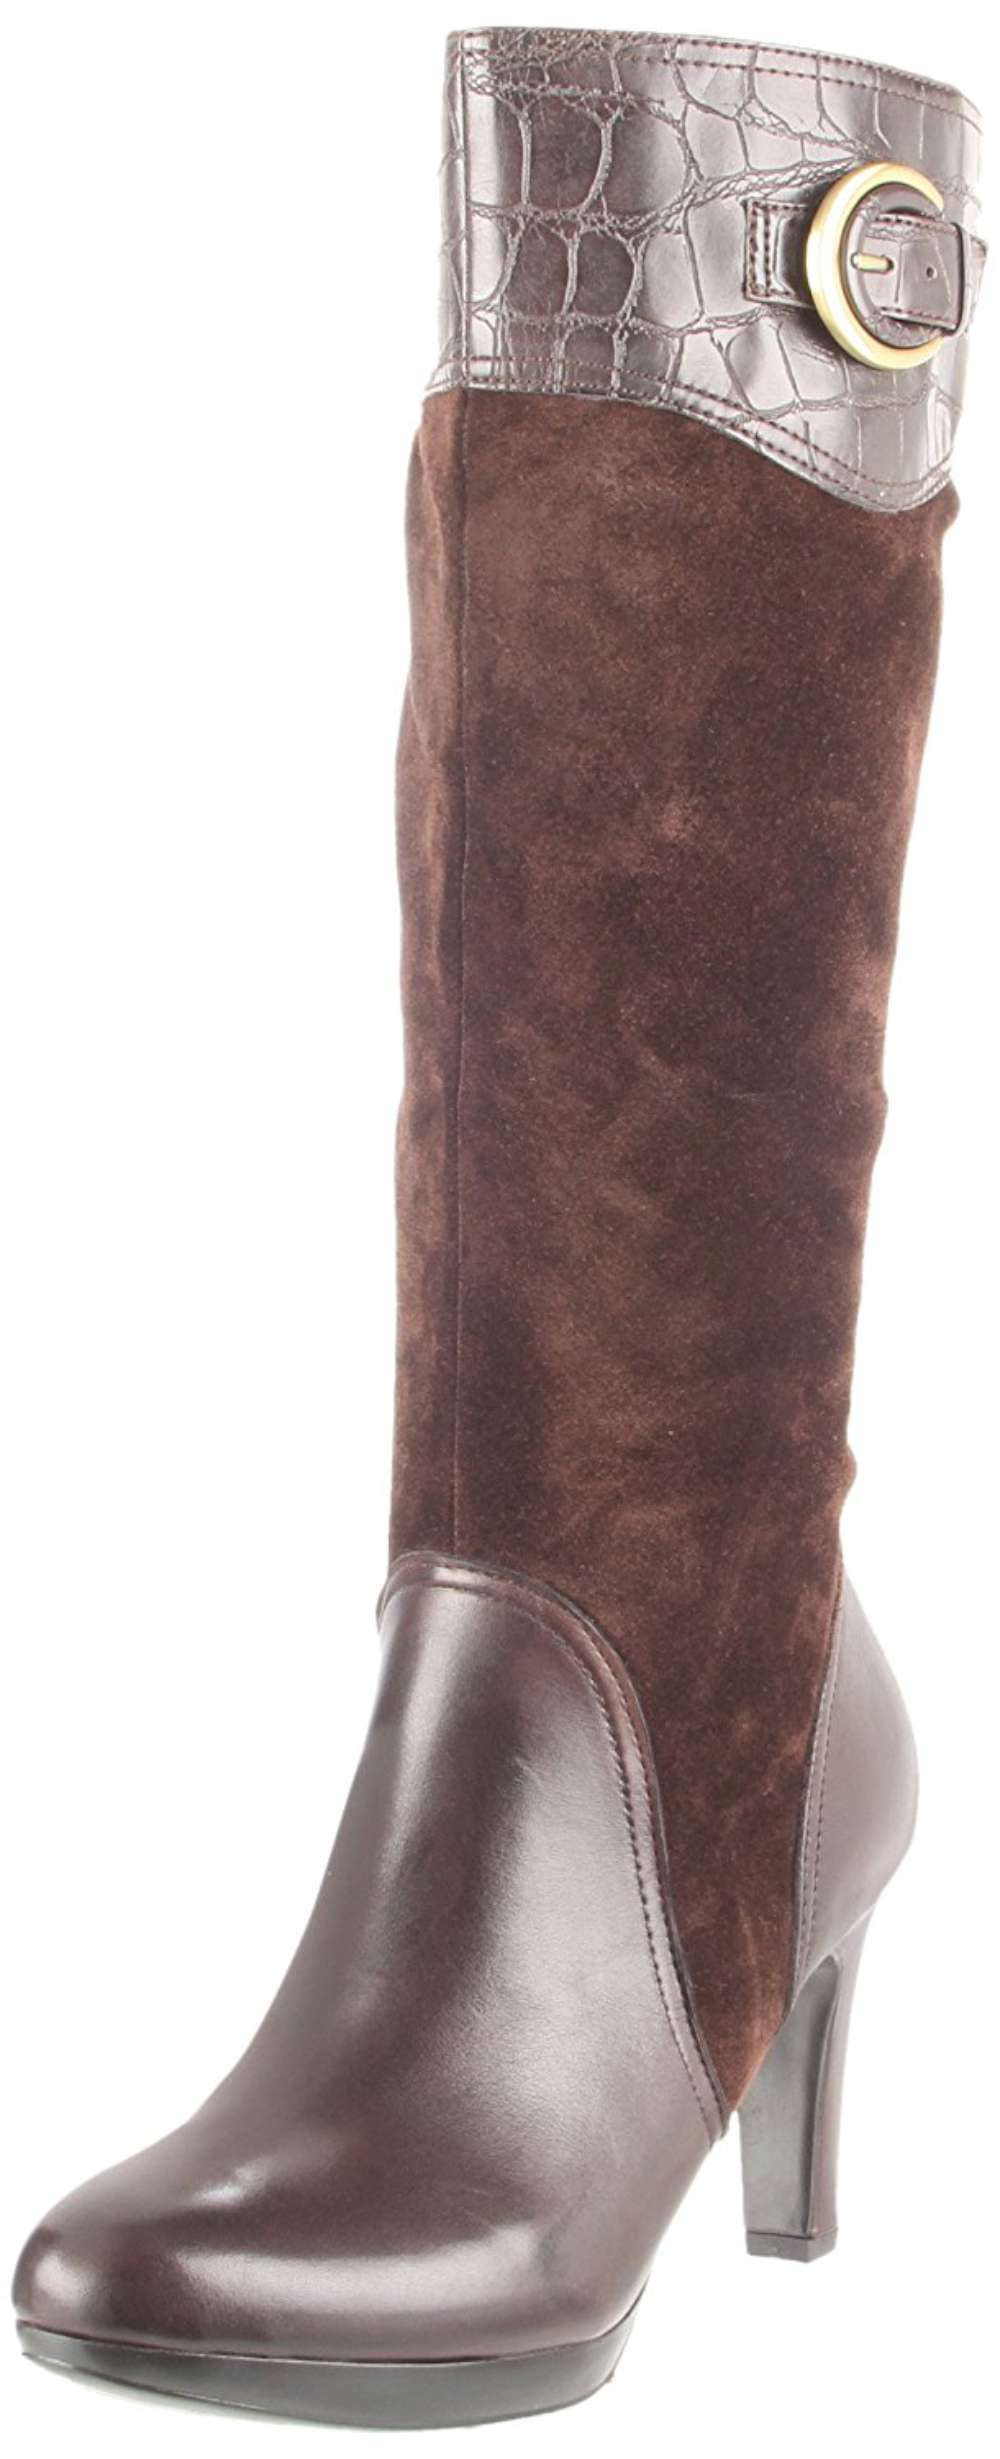 Naturalizer Womens Ilaz Leather Almond Toe Knee High Fashion Boots by Naturalizer